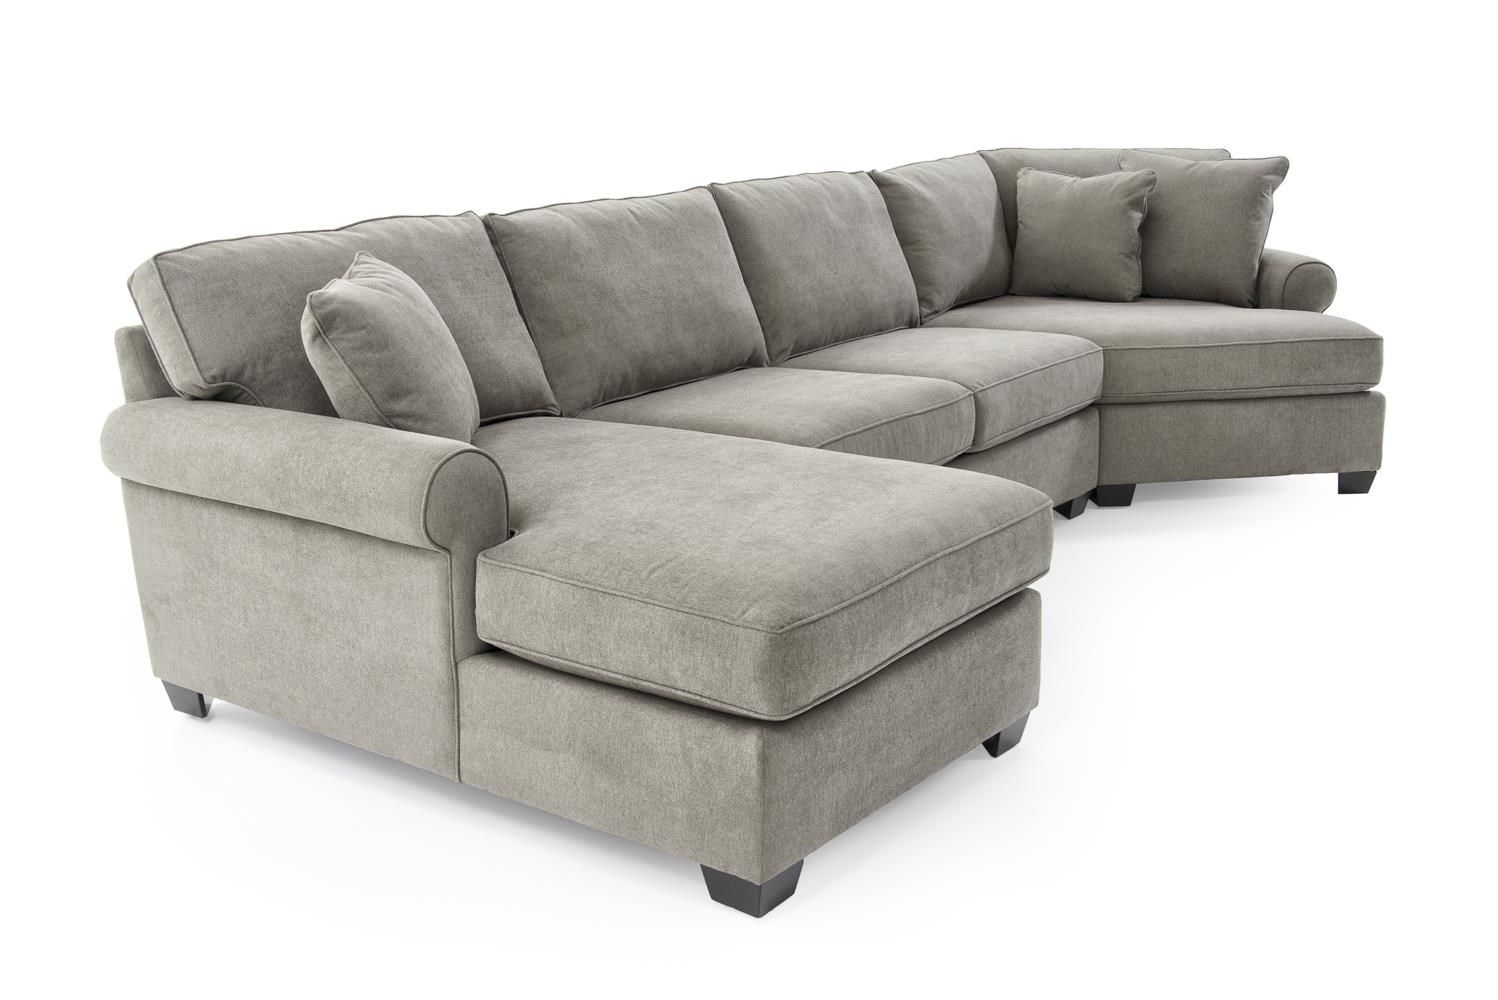 Jessica Casual Three Piece Sectional Sofa With Cuddler By Max Home